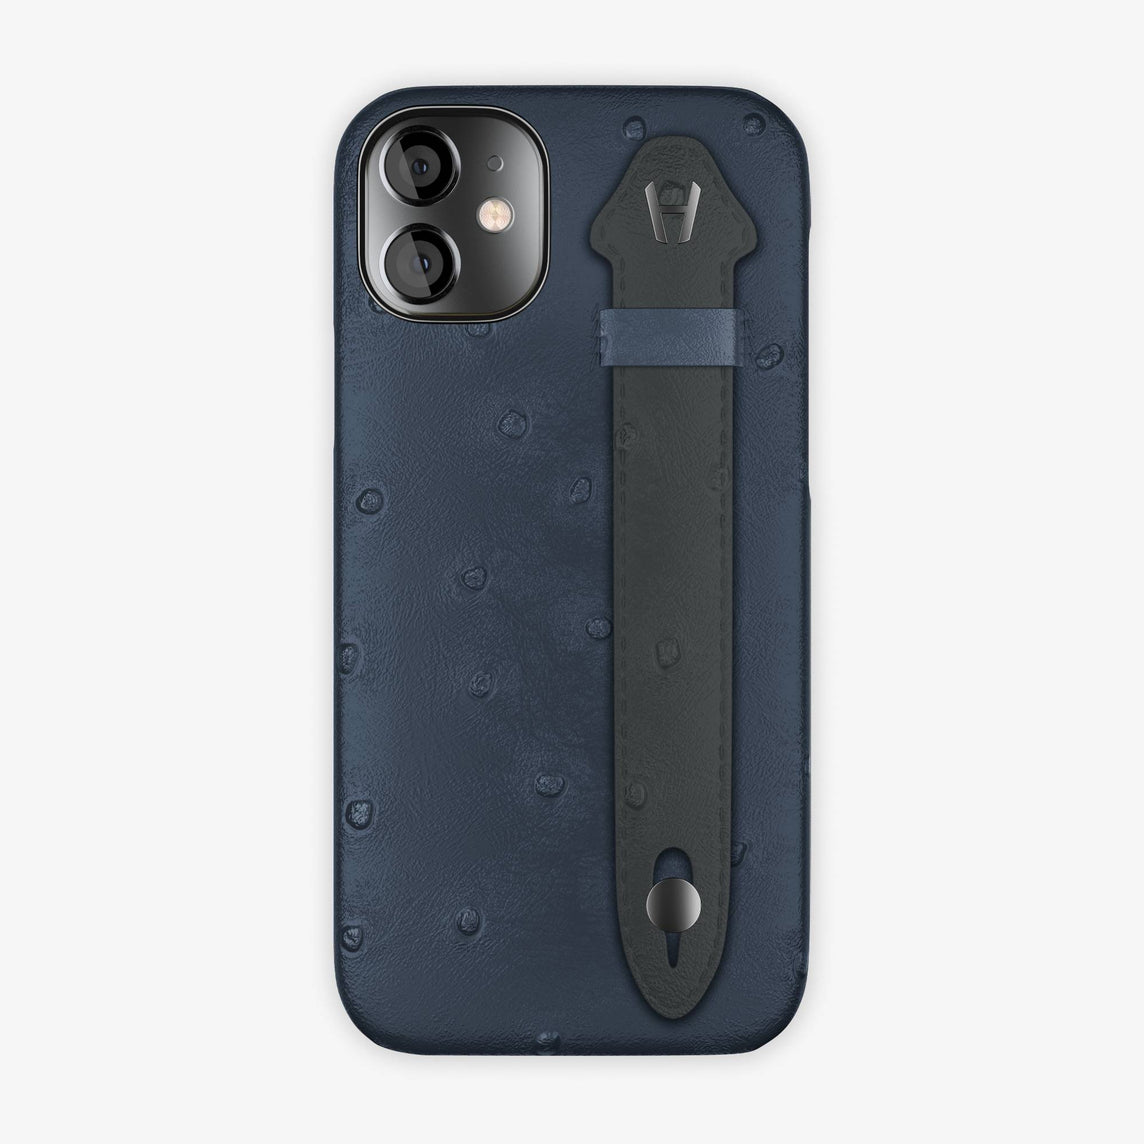 Ostrich Side Finger Case iPhone 12 Mini | Navy Blue/Anthracite - Black